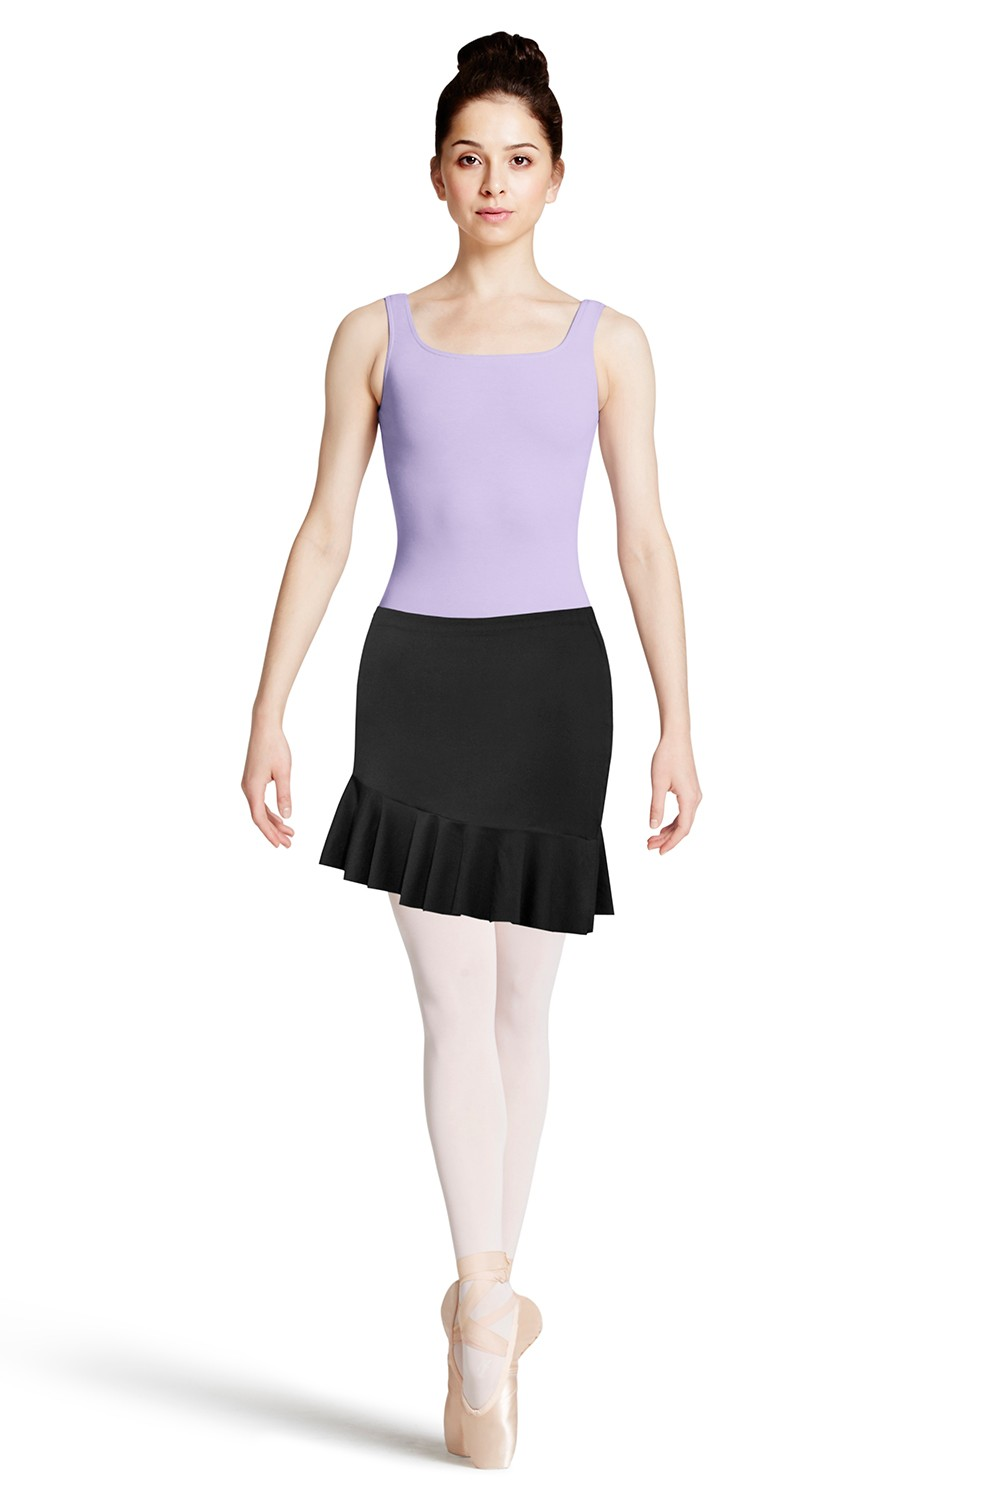 Asymmetrical Skirt Women's Dance Skirts